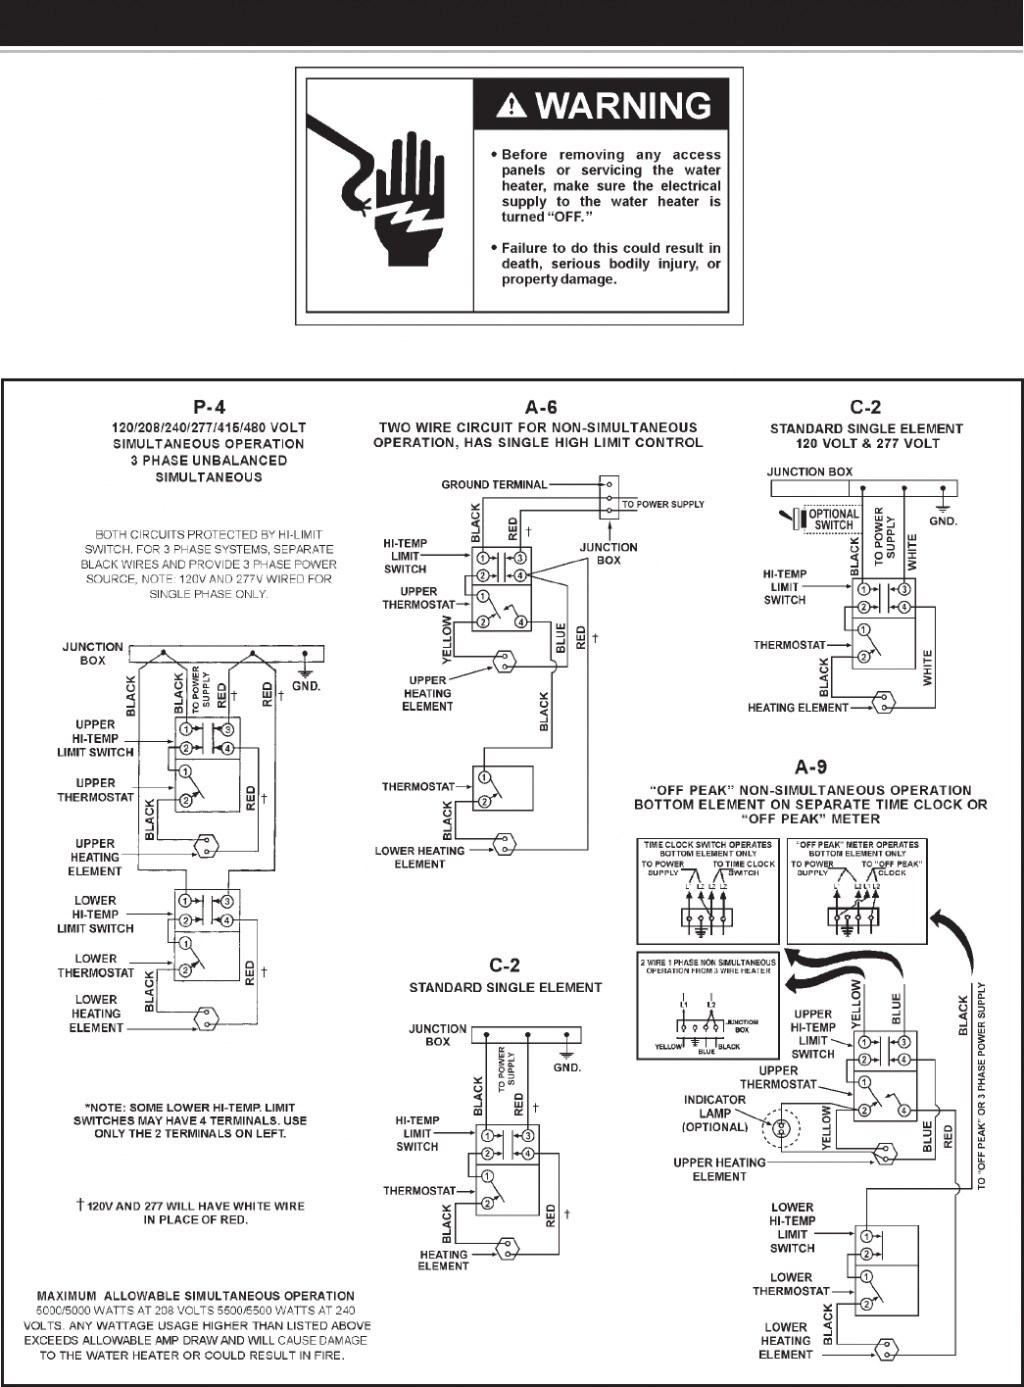 ao smith electric motor wiring diagram gallery. Black Bedroom Furniture Sets. Home Design Ideas